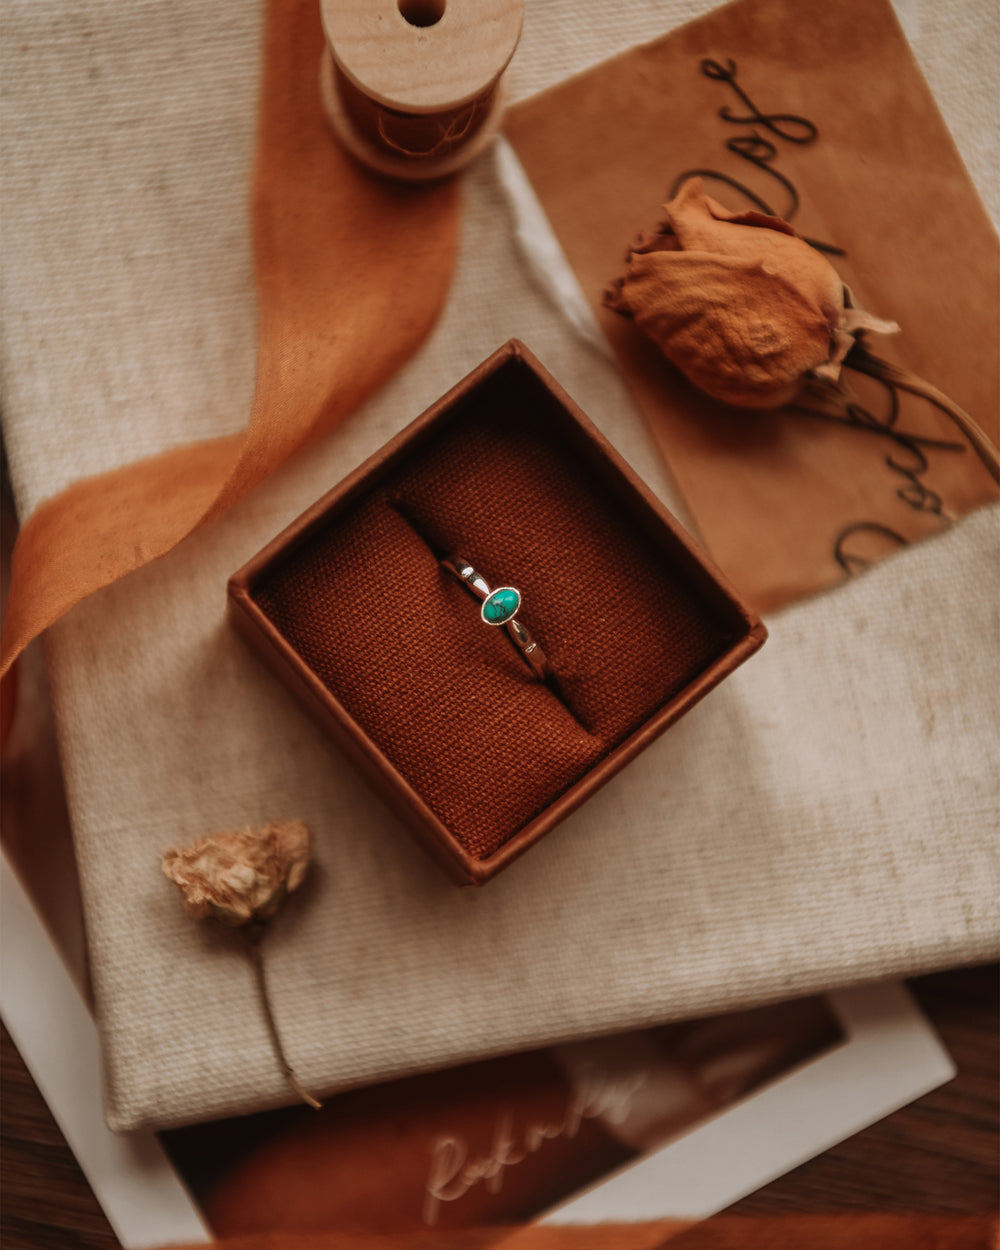 Joanie Sterling Silver Birthstone Ring - December